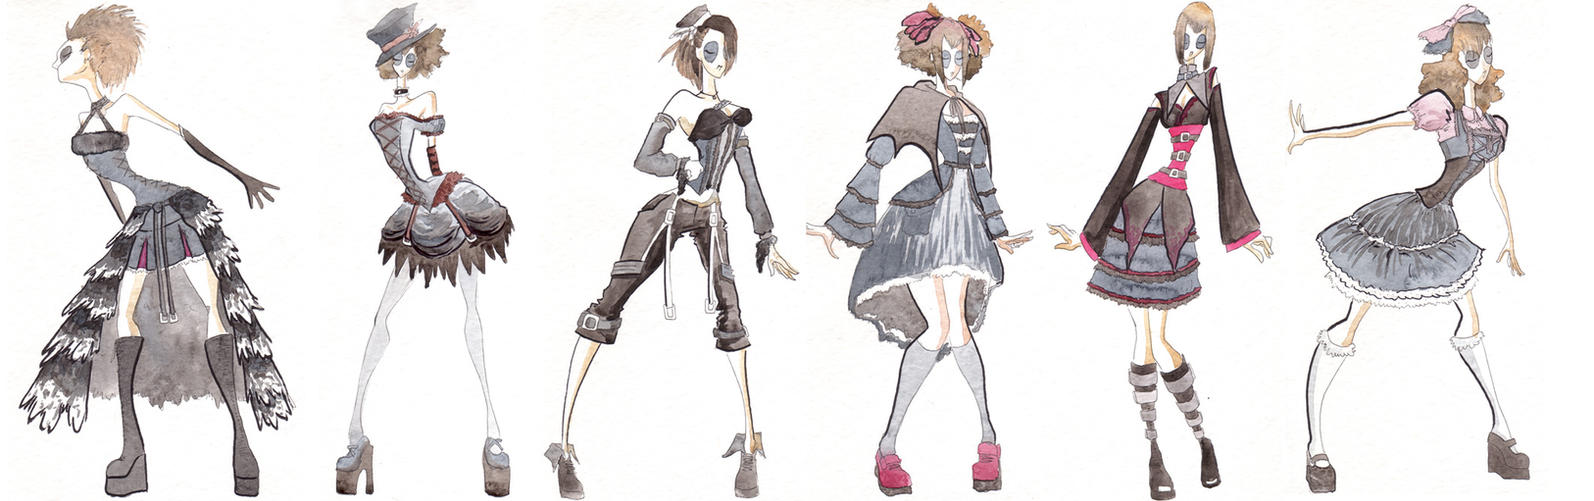 Gothic Clothes Designs By Cold Blooded Angel On Deviantart